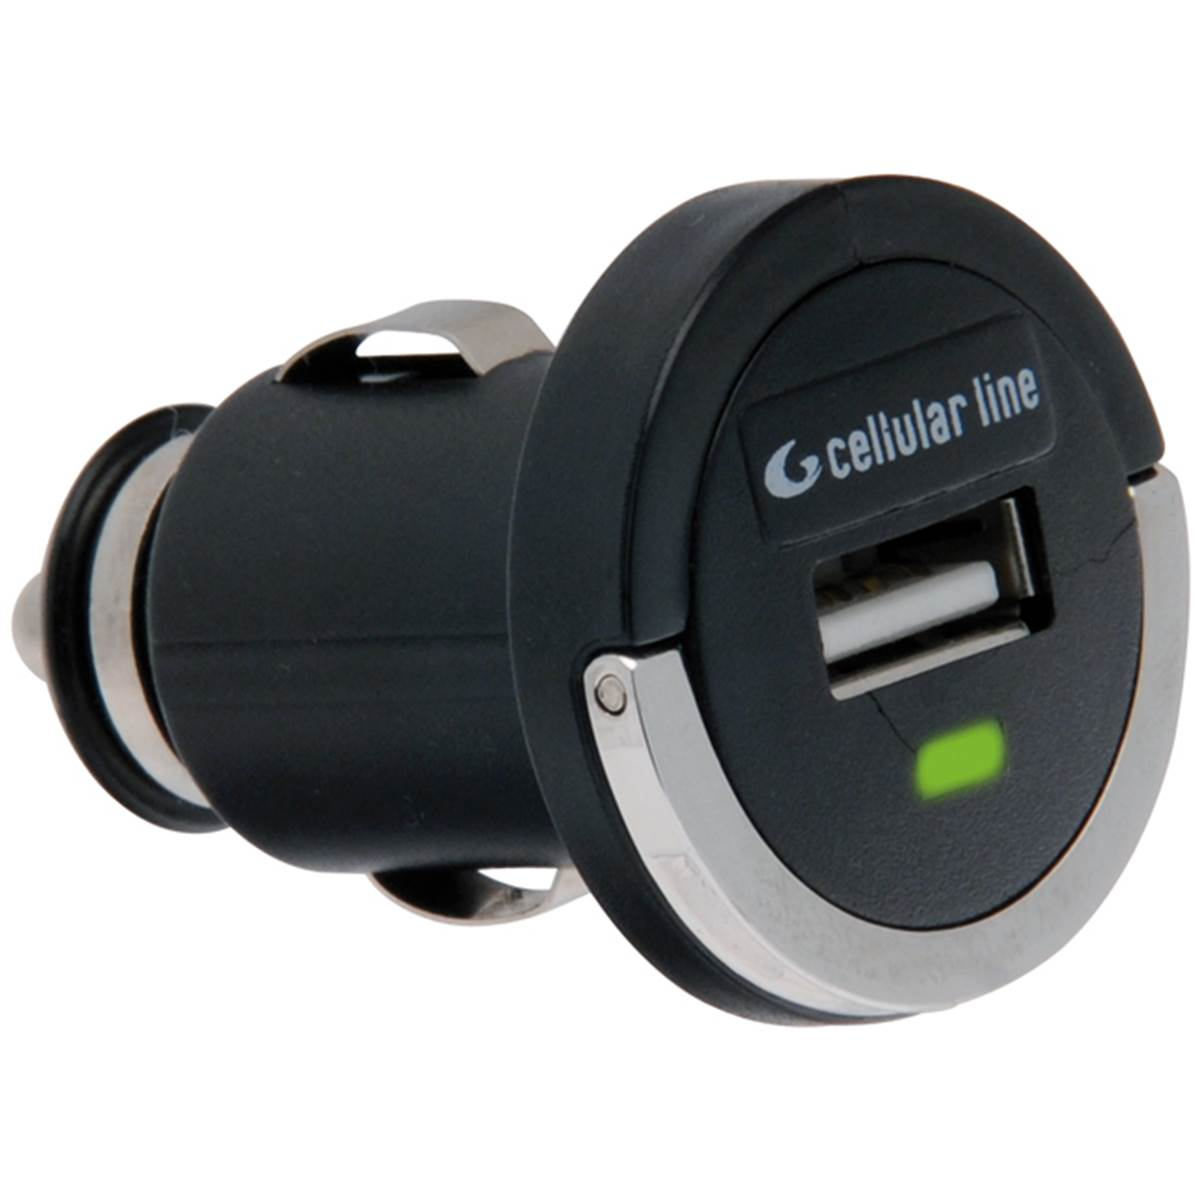 Micro chargeur allume-cigare USB Cellular Line